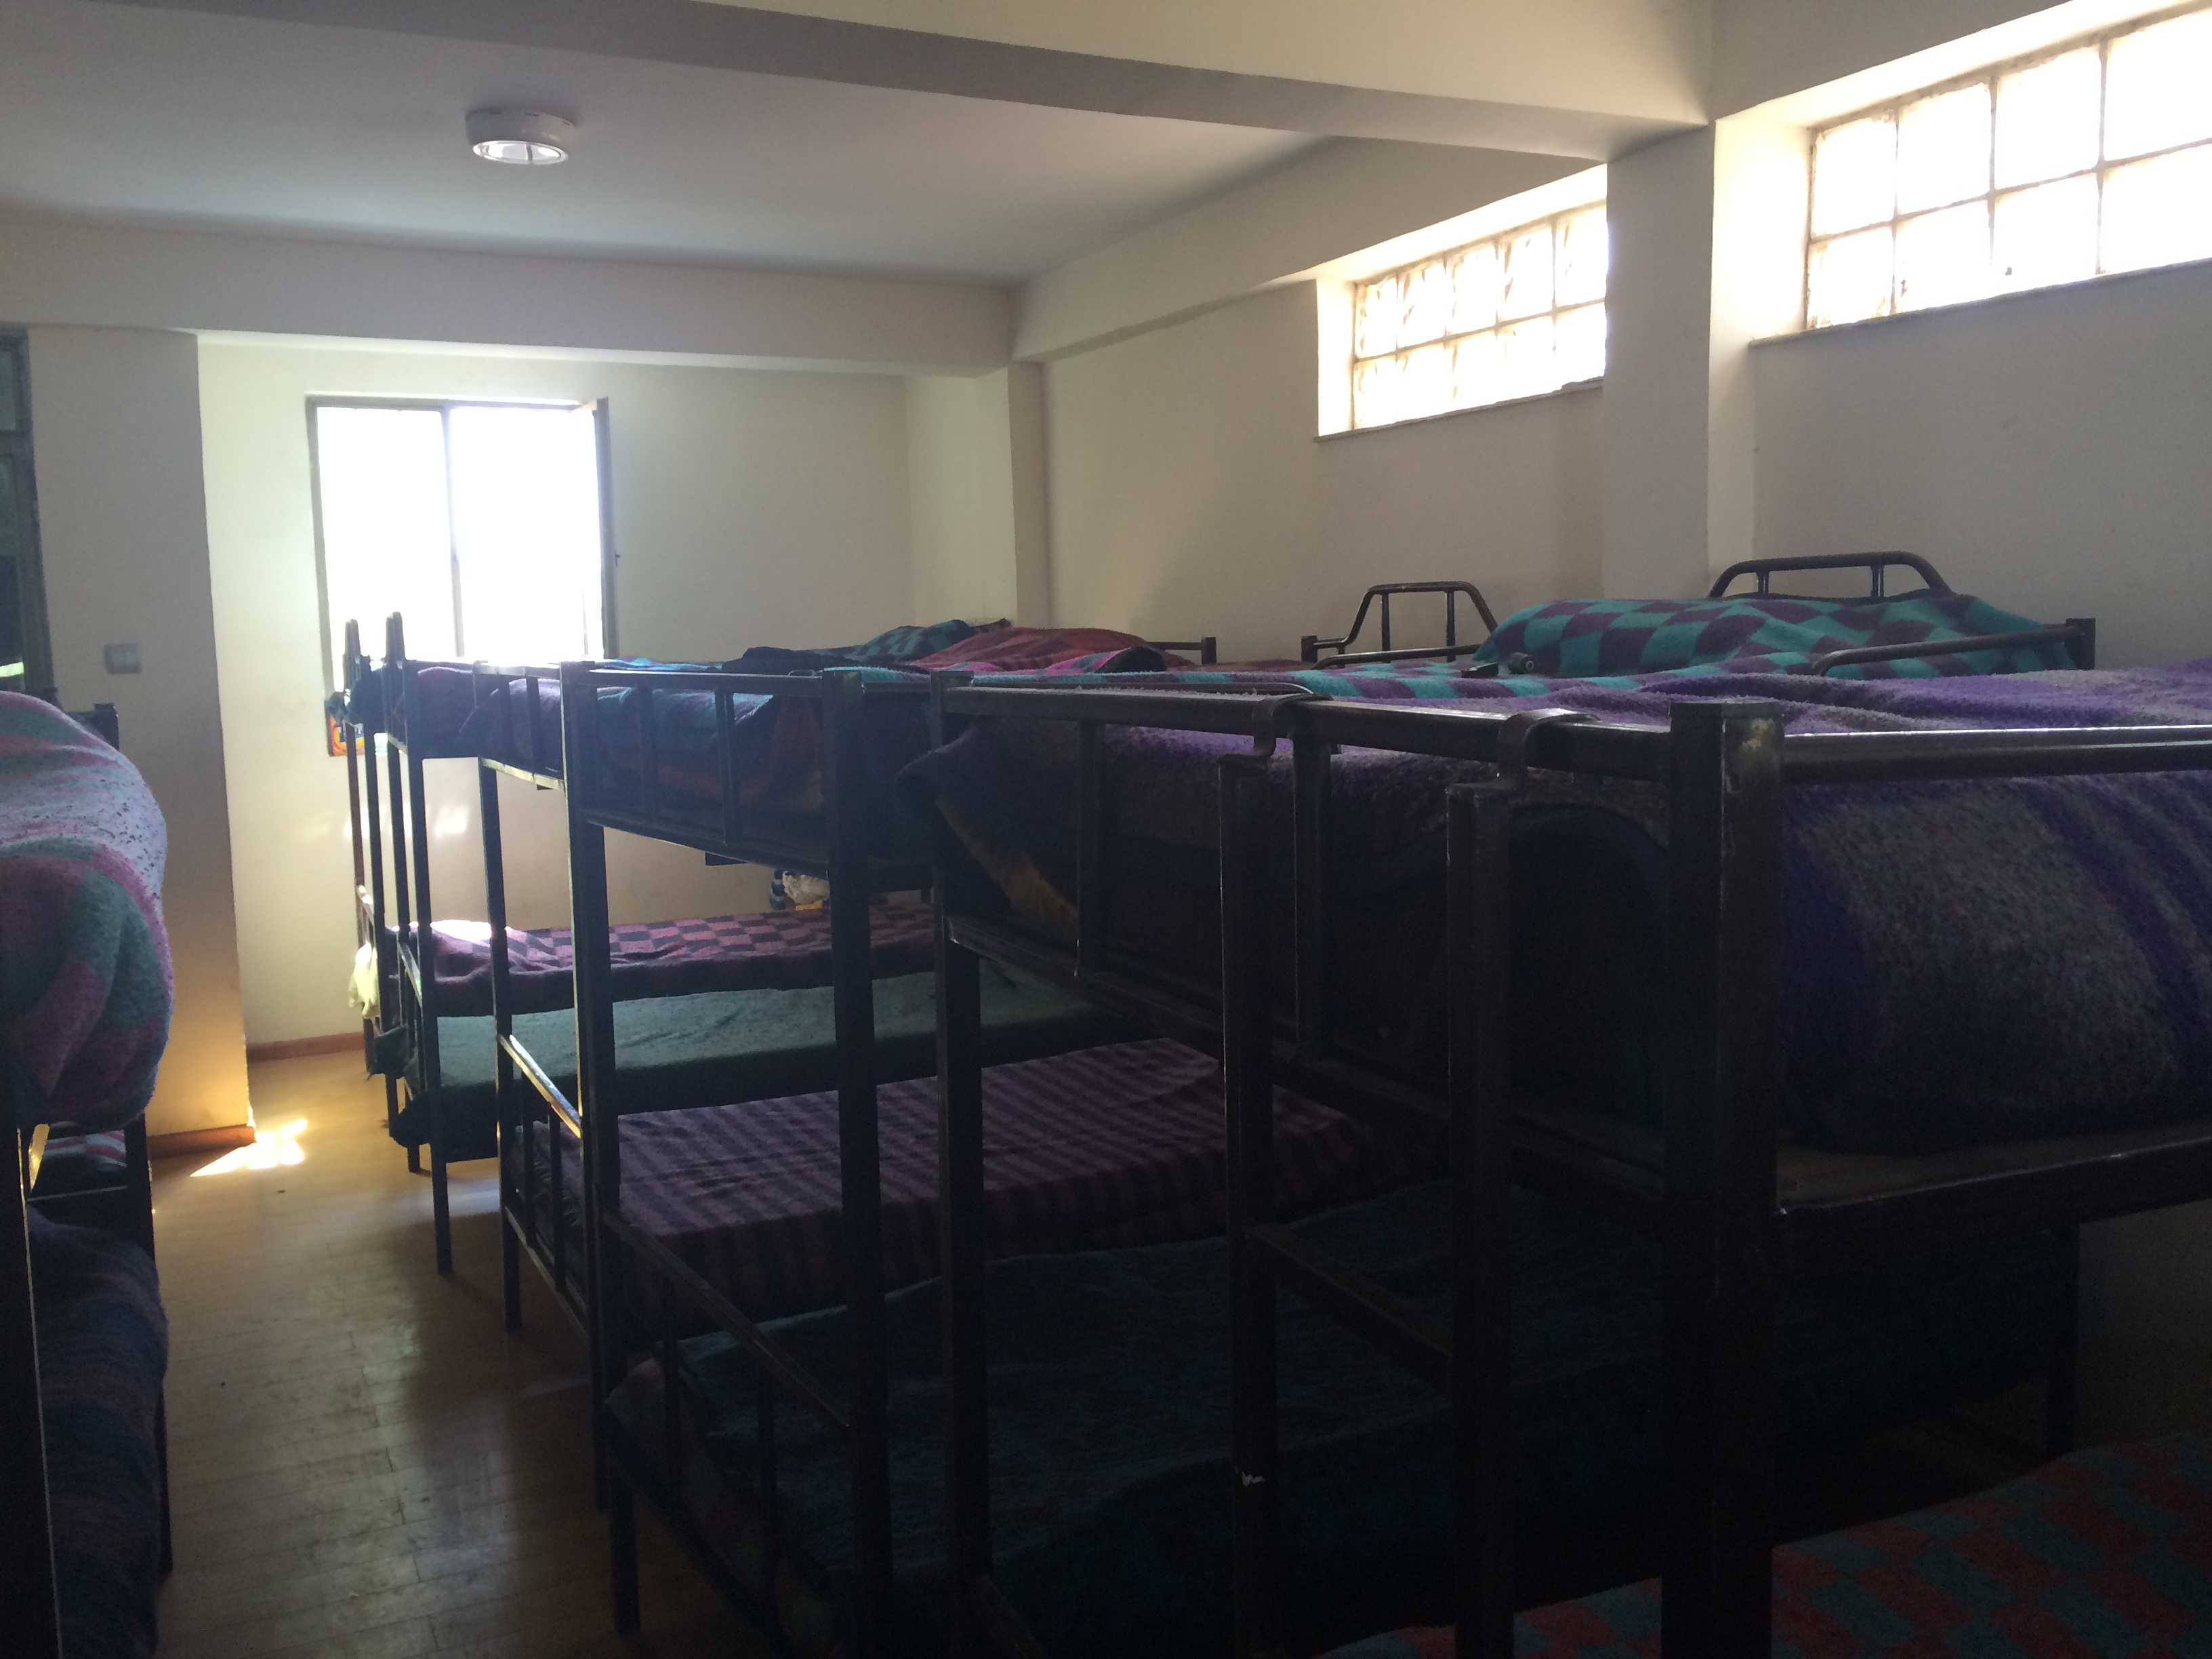 A shelter in Addis Adaba for women who have returned from the Middle East. The Freedom Fund / Audrey Guichon